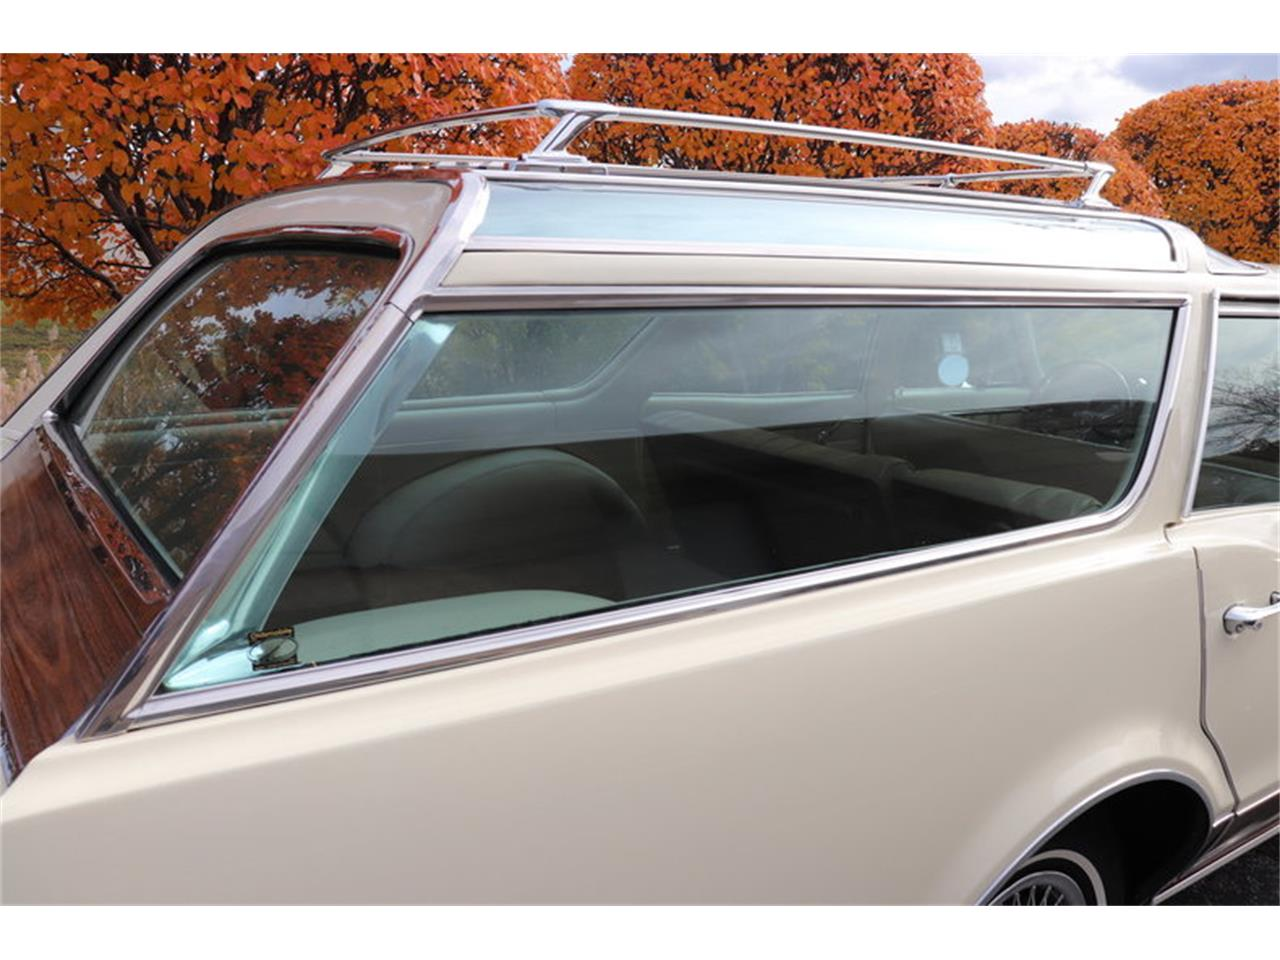 Large Picture of Classic '67 Oldsmobile Vista Cruiser located in Illinois - MABL